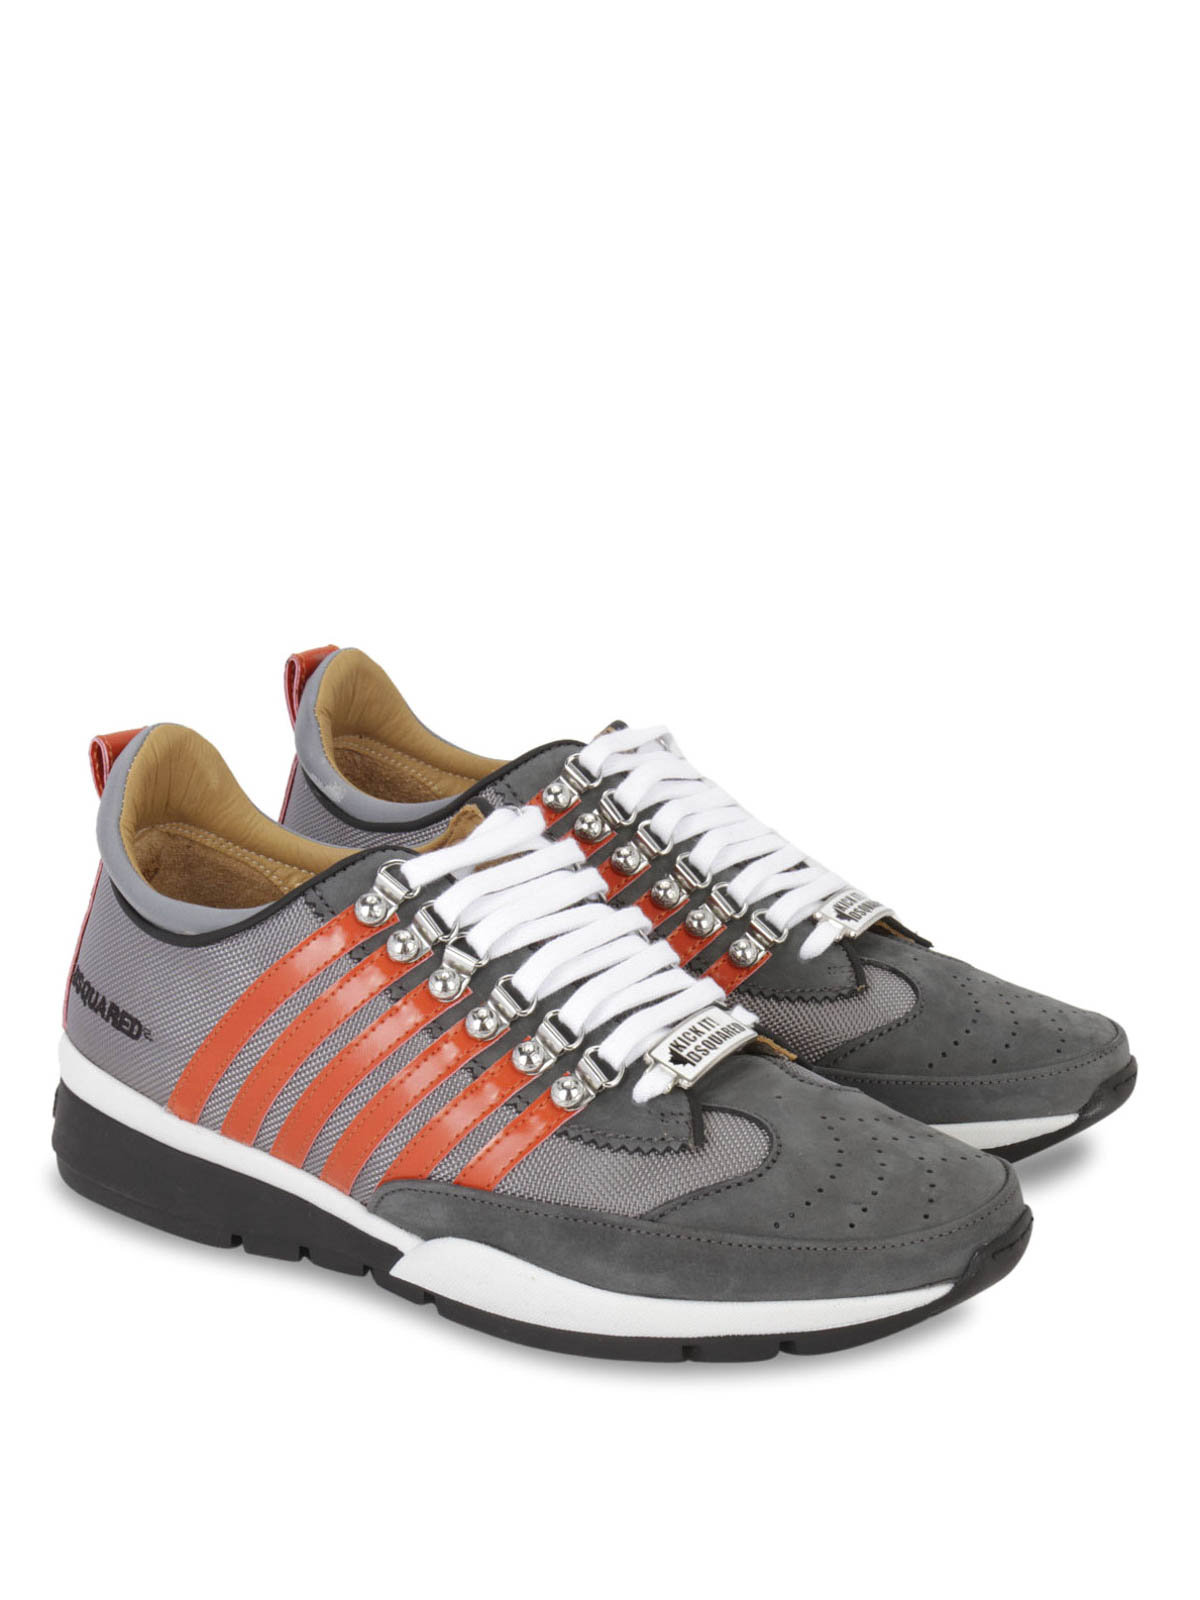 Dsquared2 - 251 sneakers - trainers